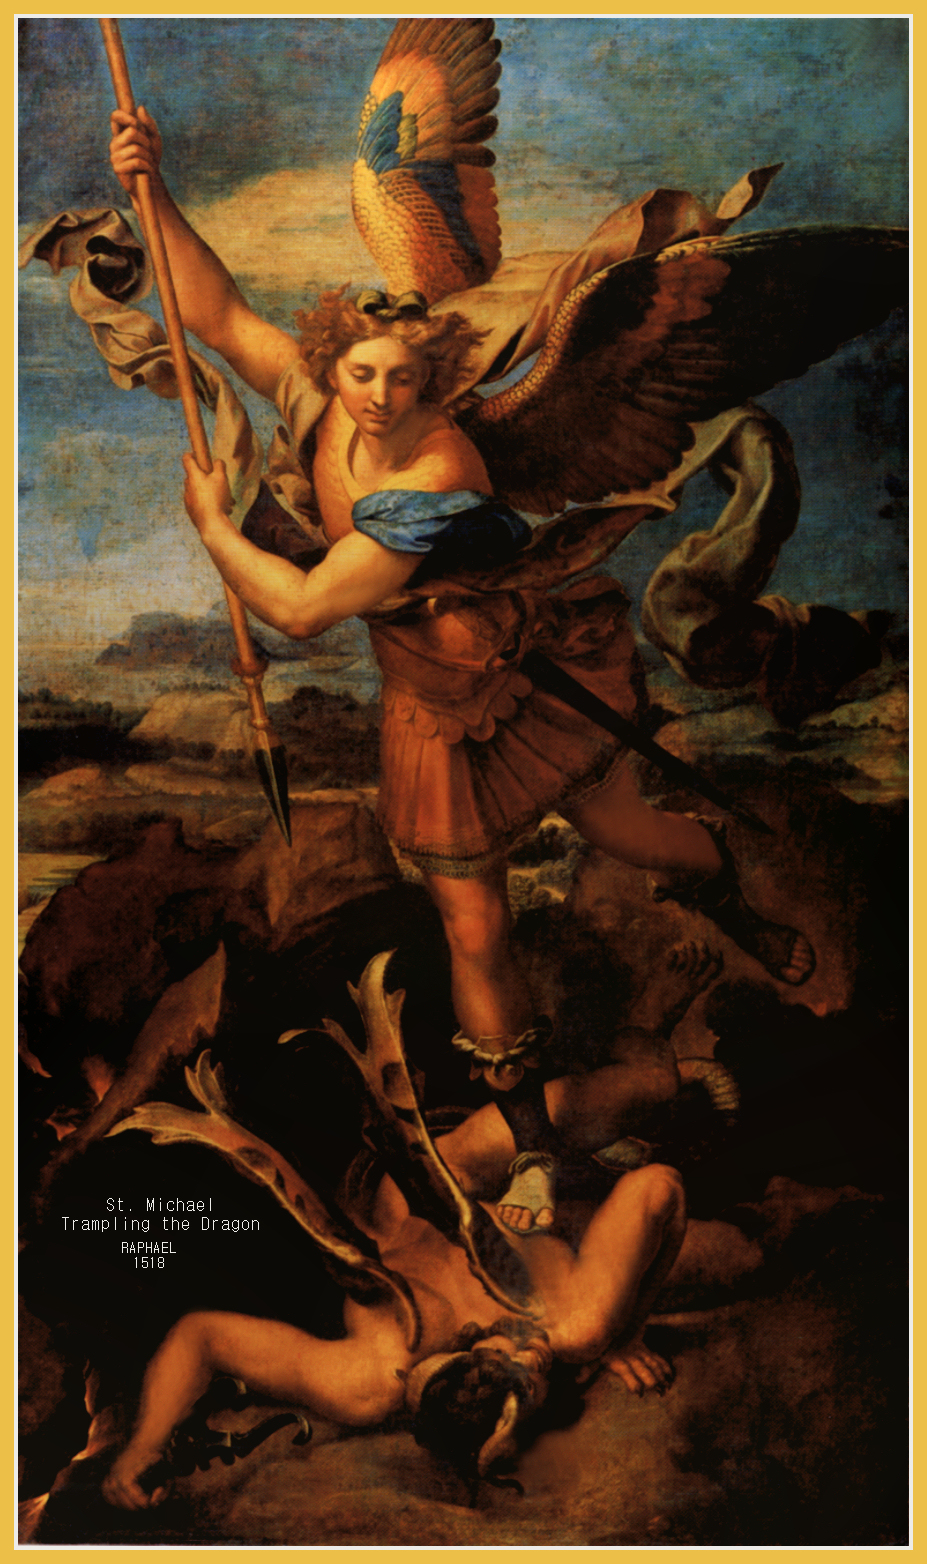 ST. MICHAEL TRAMPLING THE DRAGON